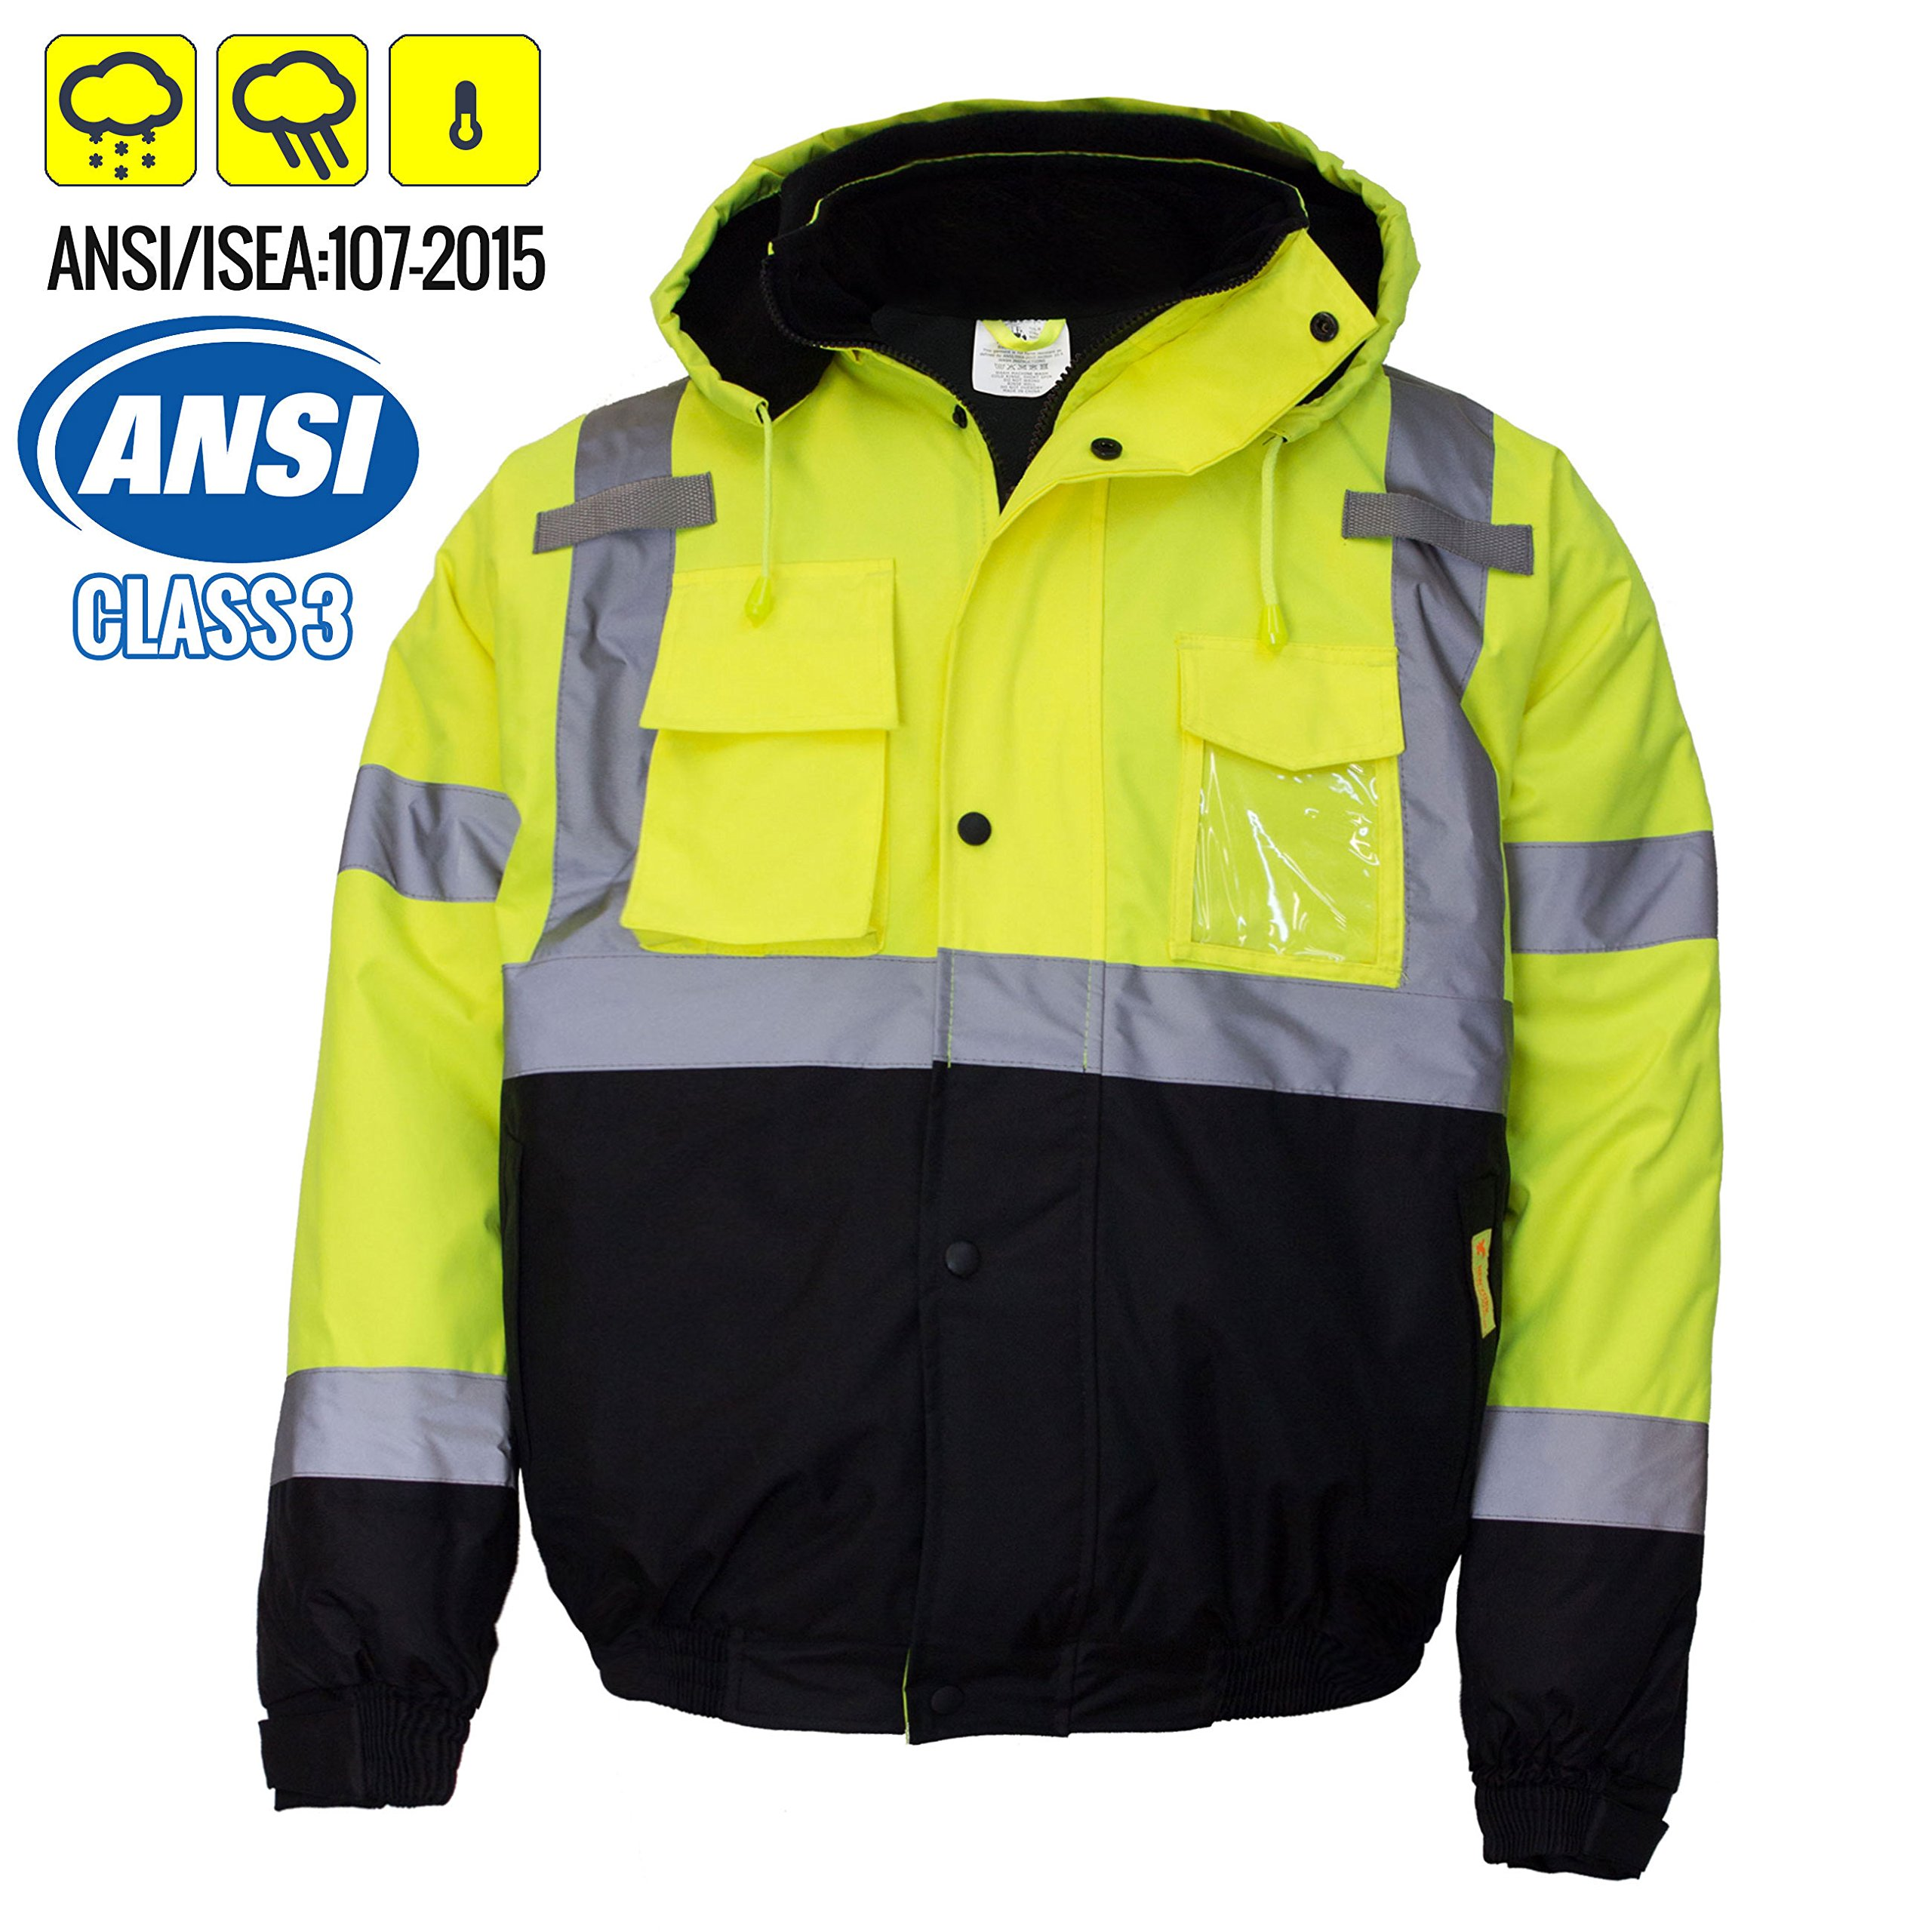 New York Hi-Viz Workwear WJ9012-XL Men's ANSI Class 3 High Visibility Bomber Safety Jacket, Waterproof (Extra Large, Lime)